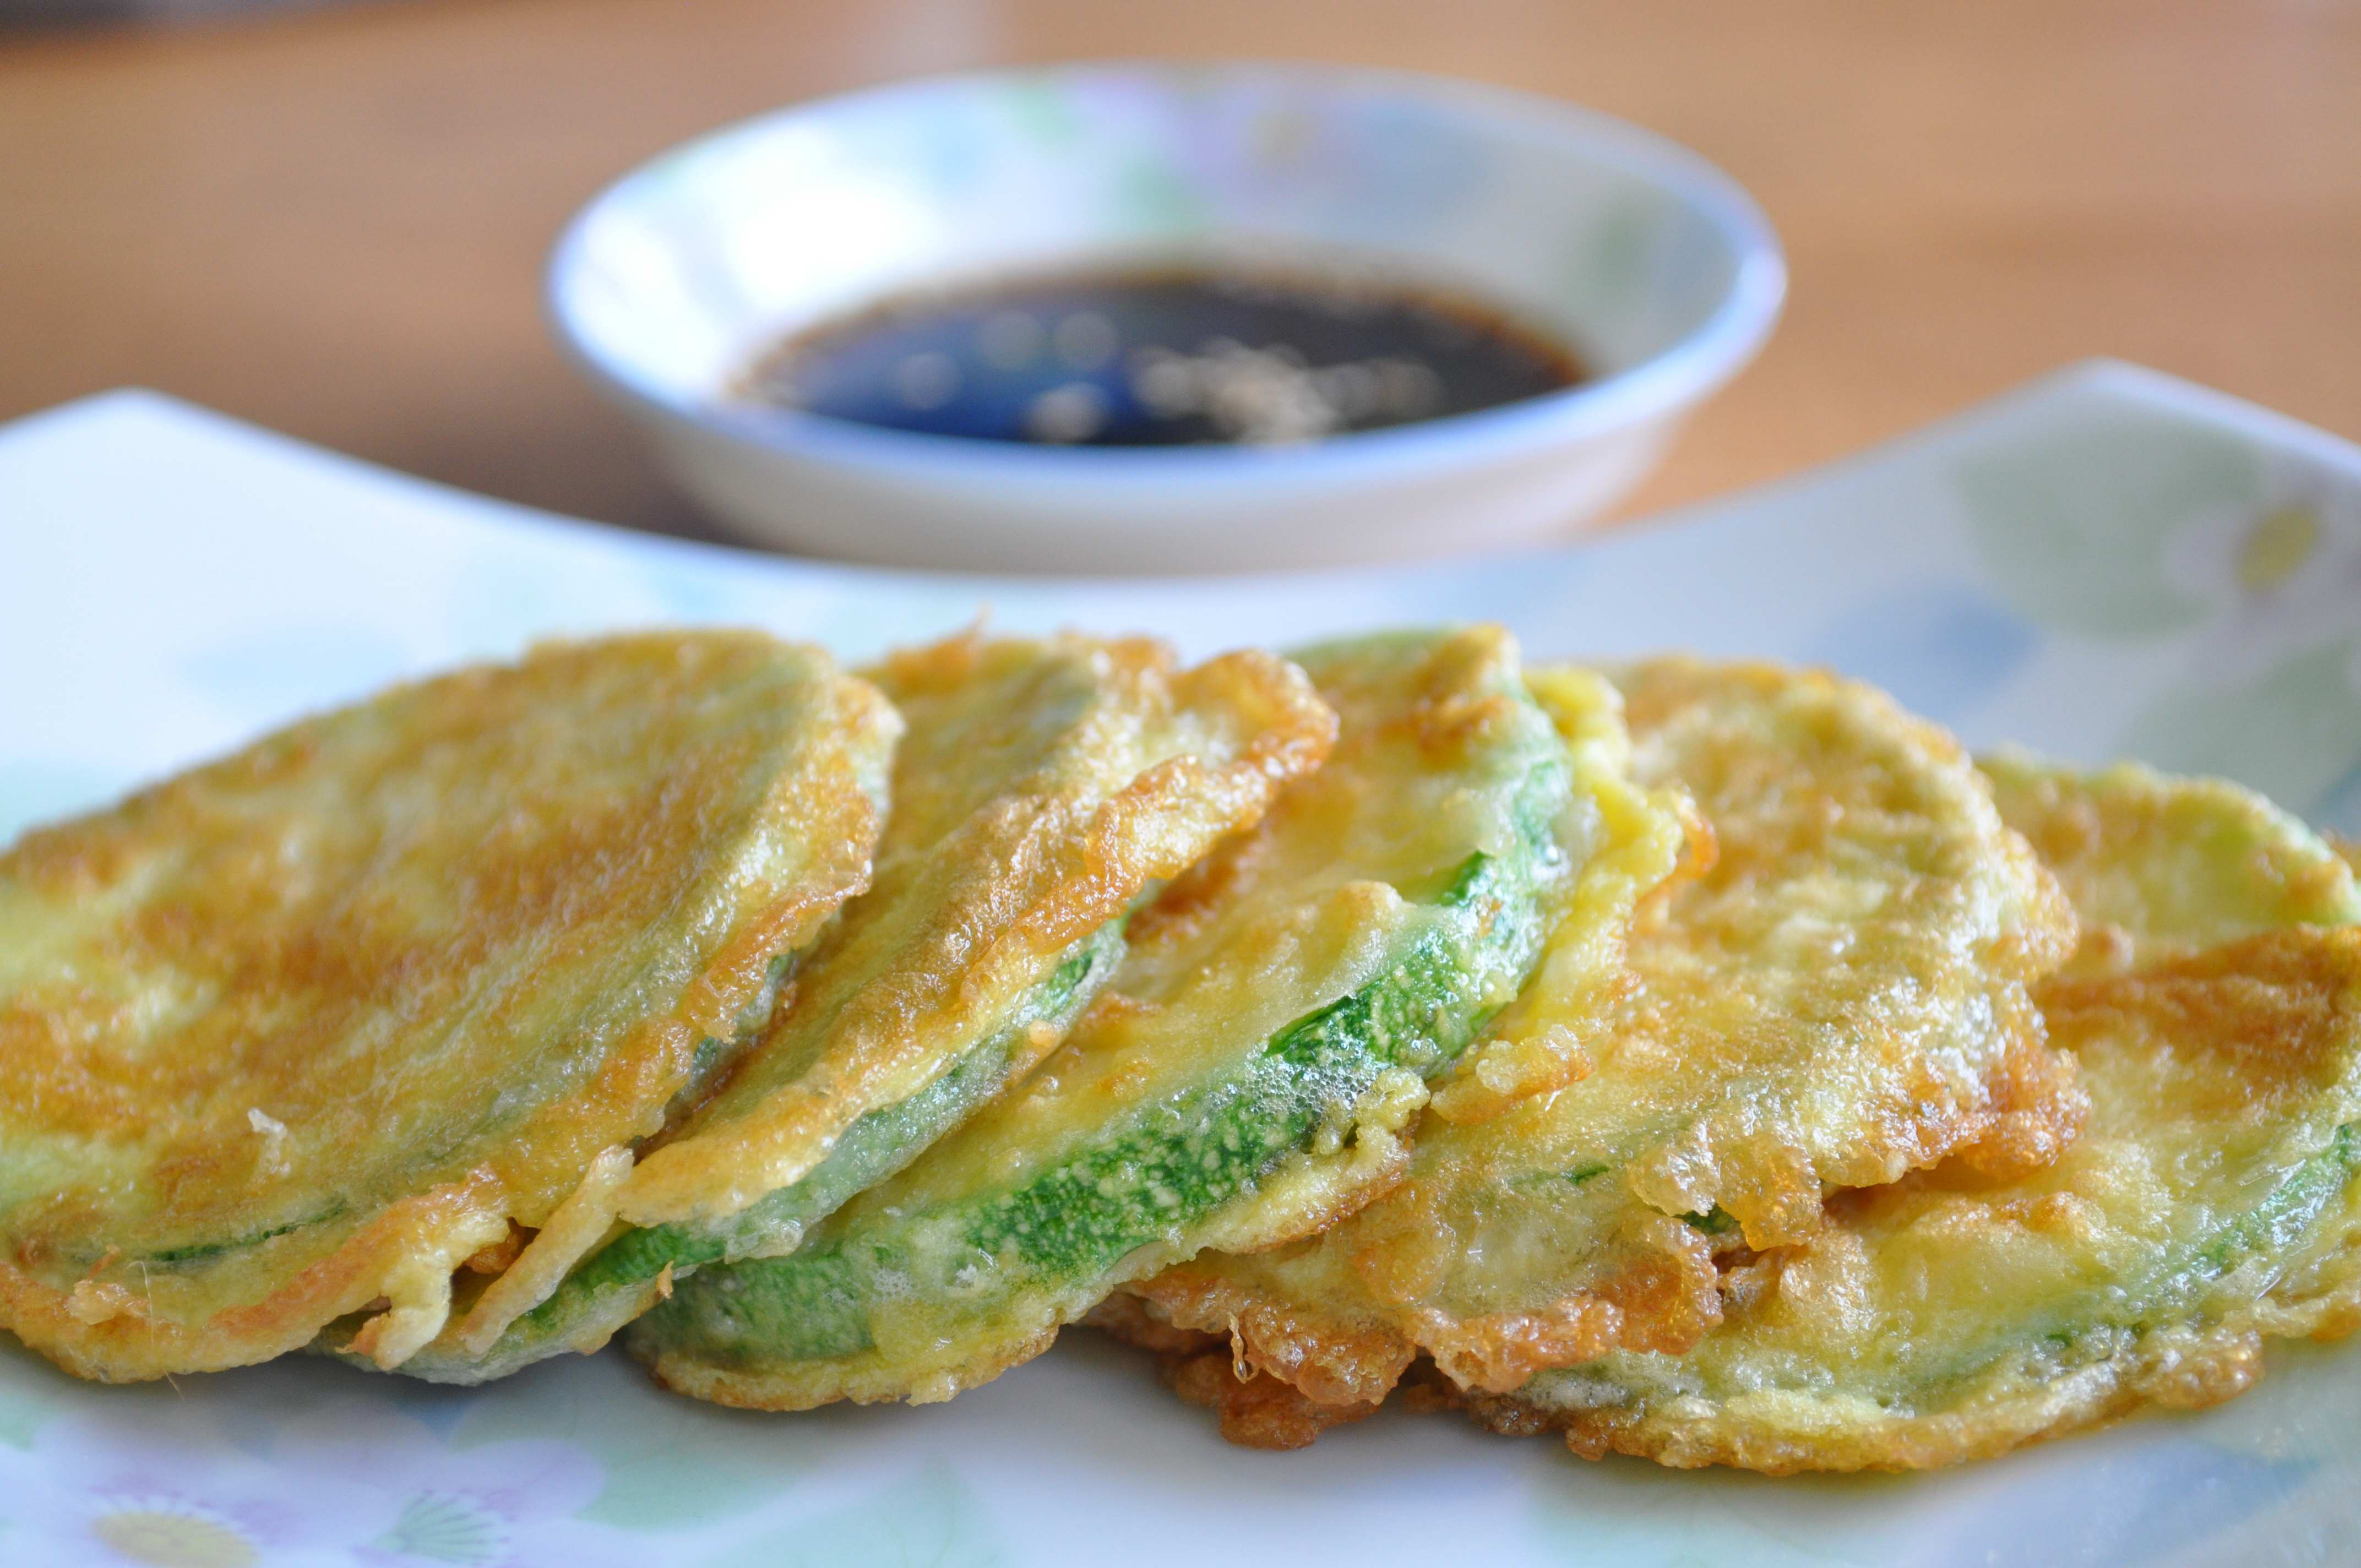 Pan-fried Zucchini Fritters (호박전 Hobak Jeon)